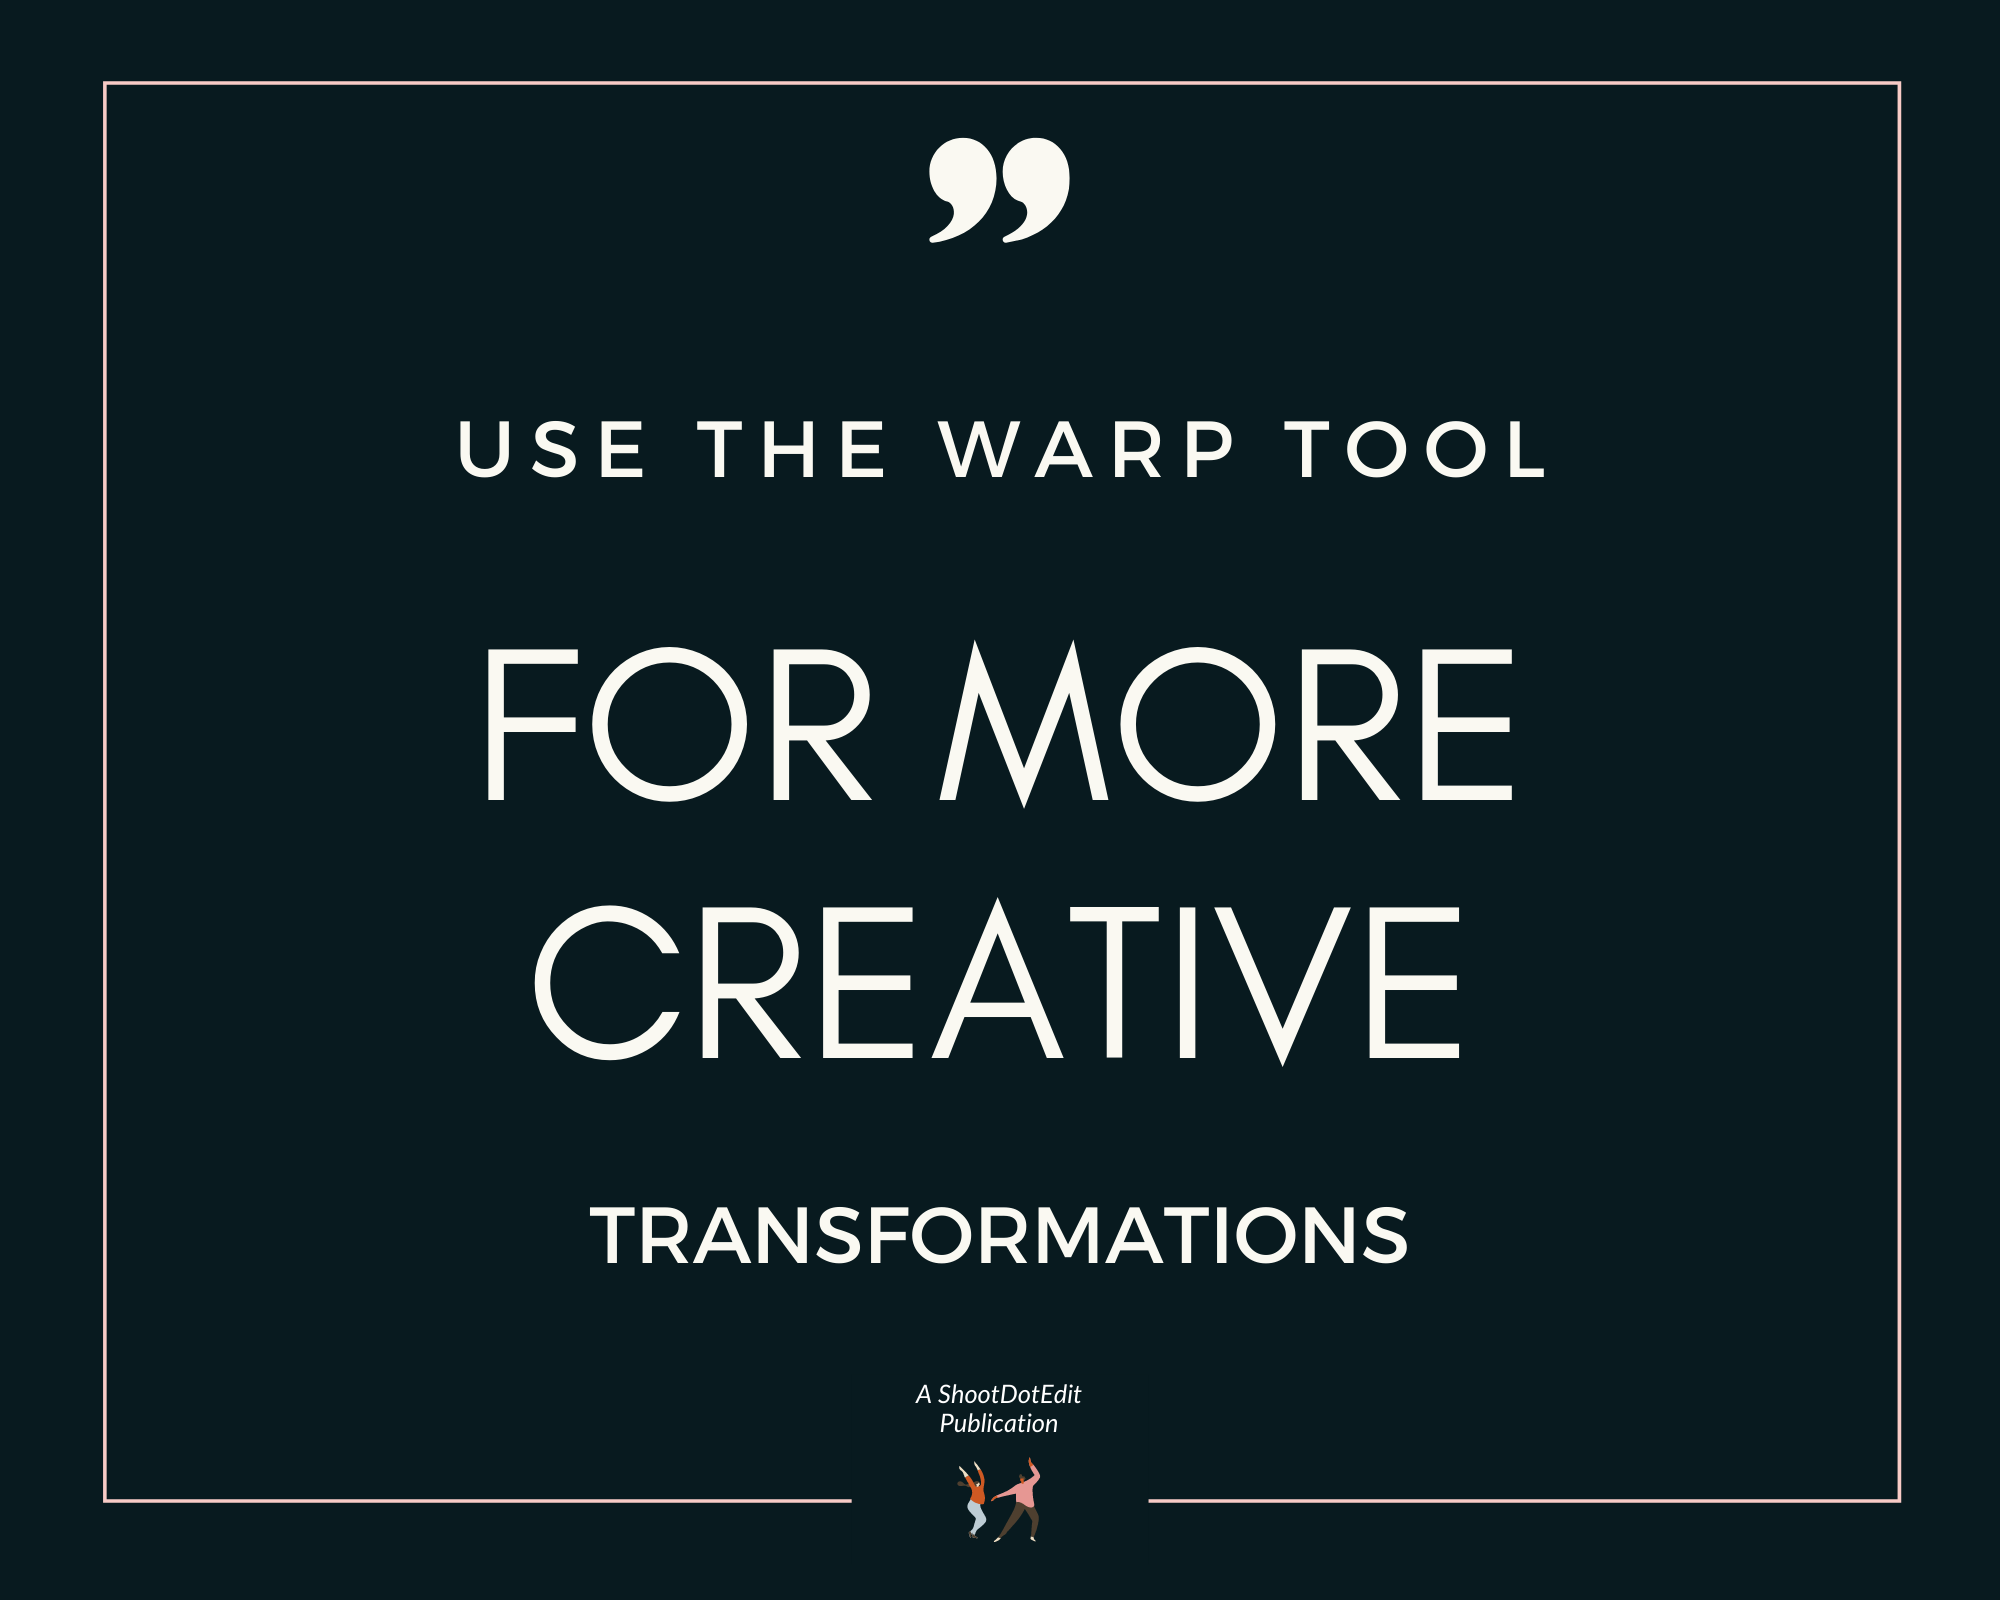 Infographic stating use the warp tool for more creative transformations